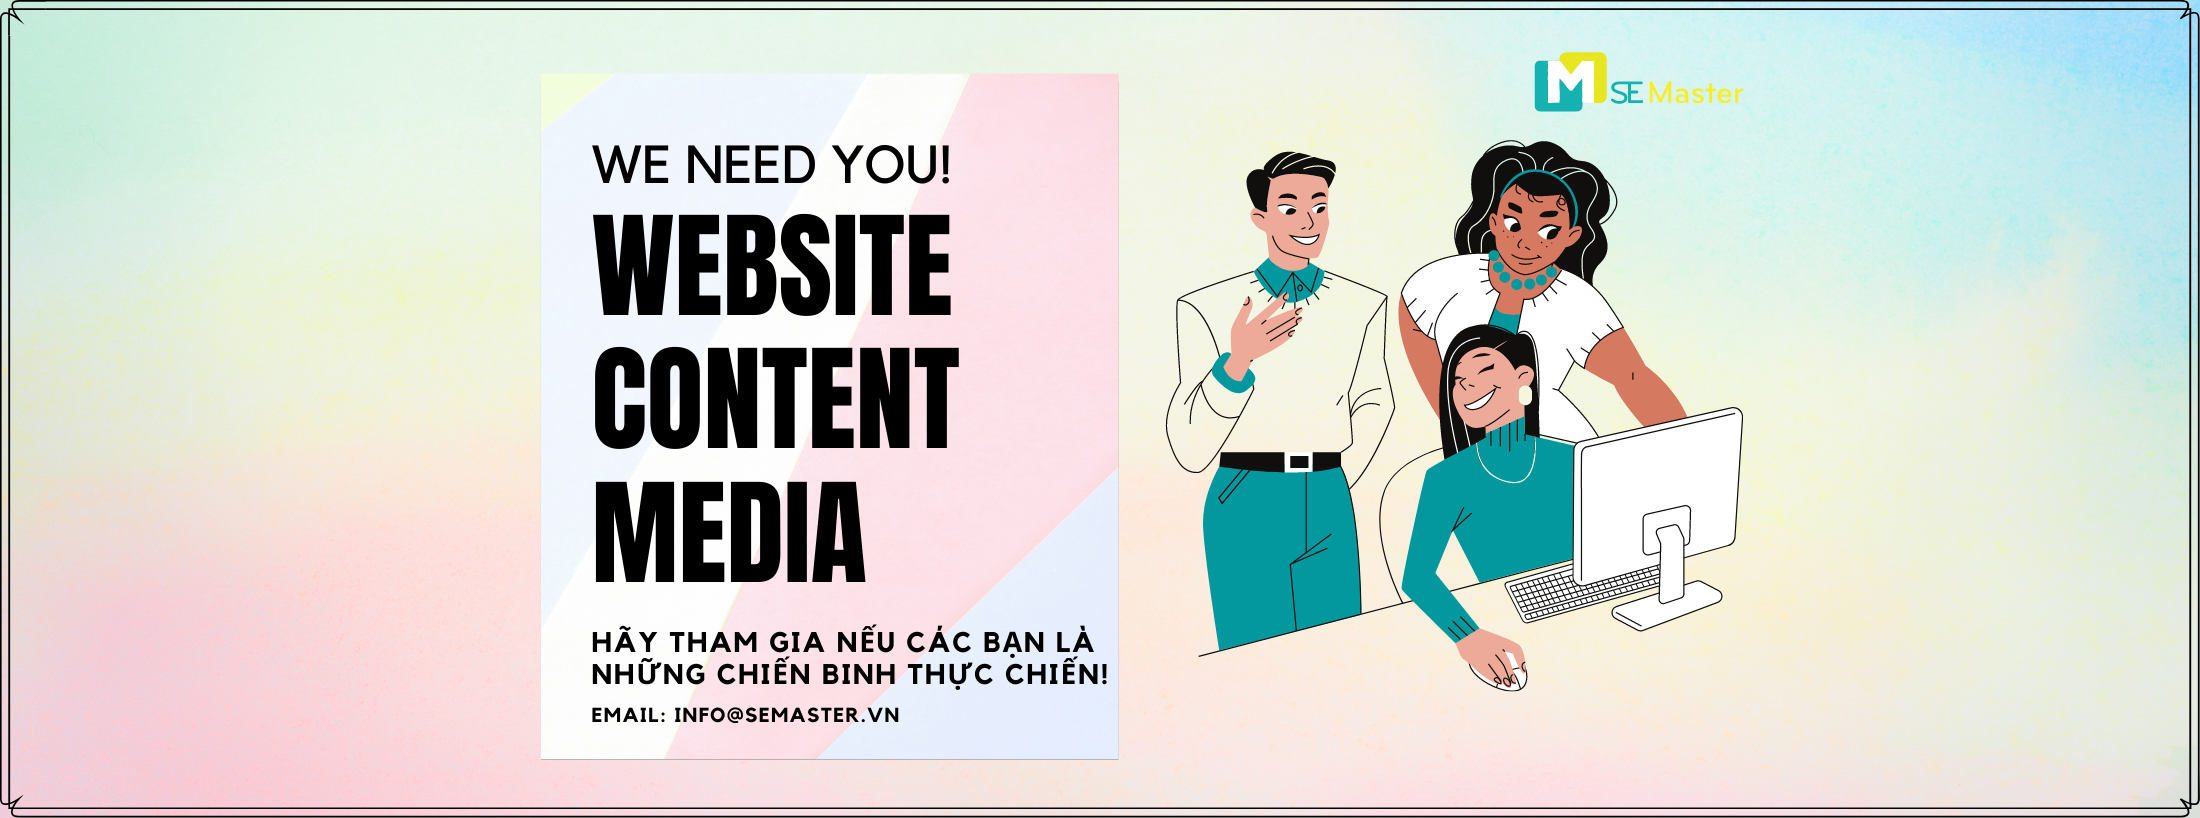 SE Master Solutions tuyen dung website media content